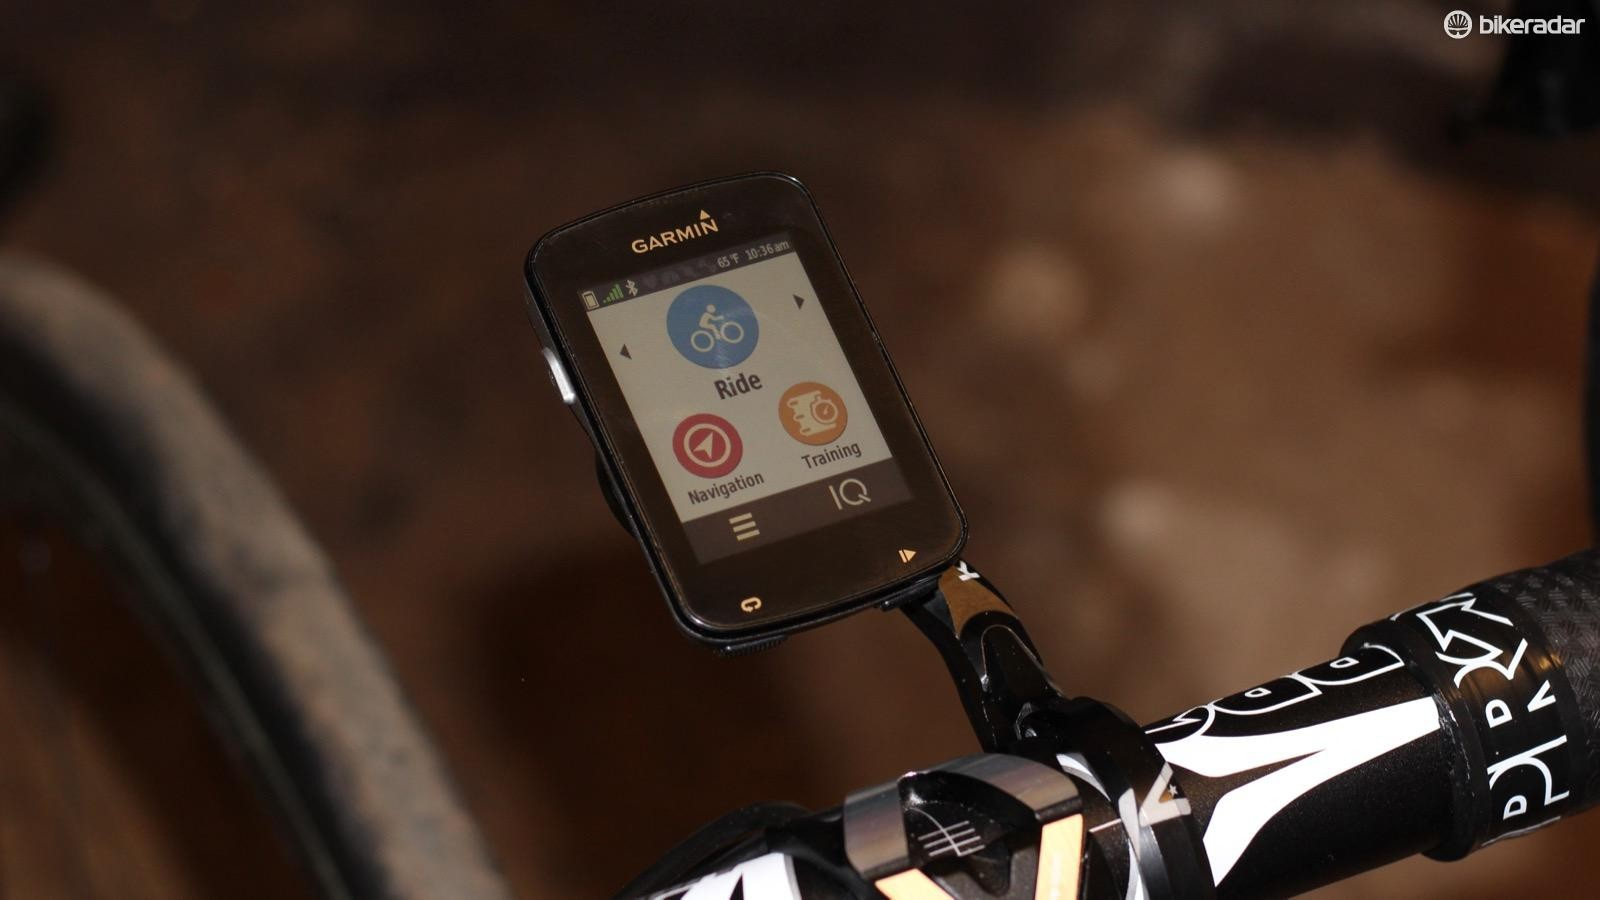 The Edge 820 adds some additional navigation features over the 520